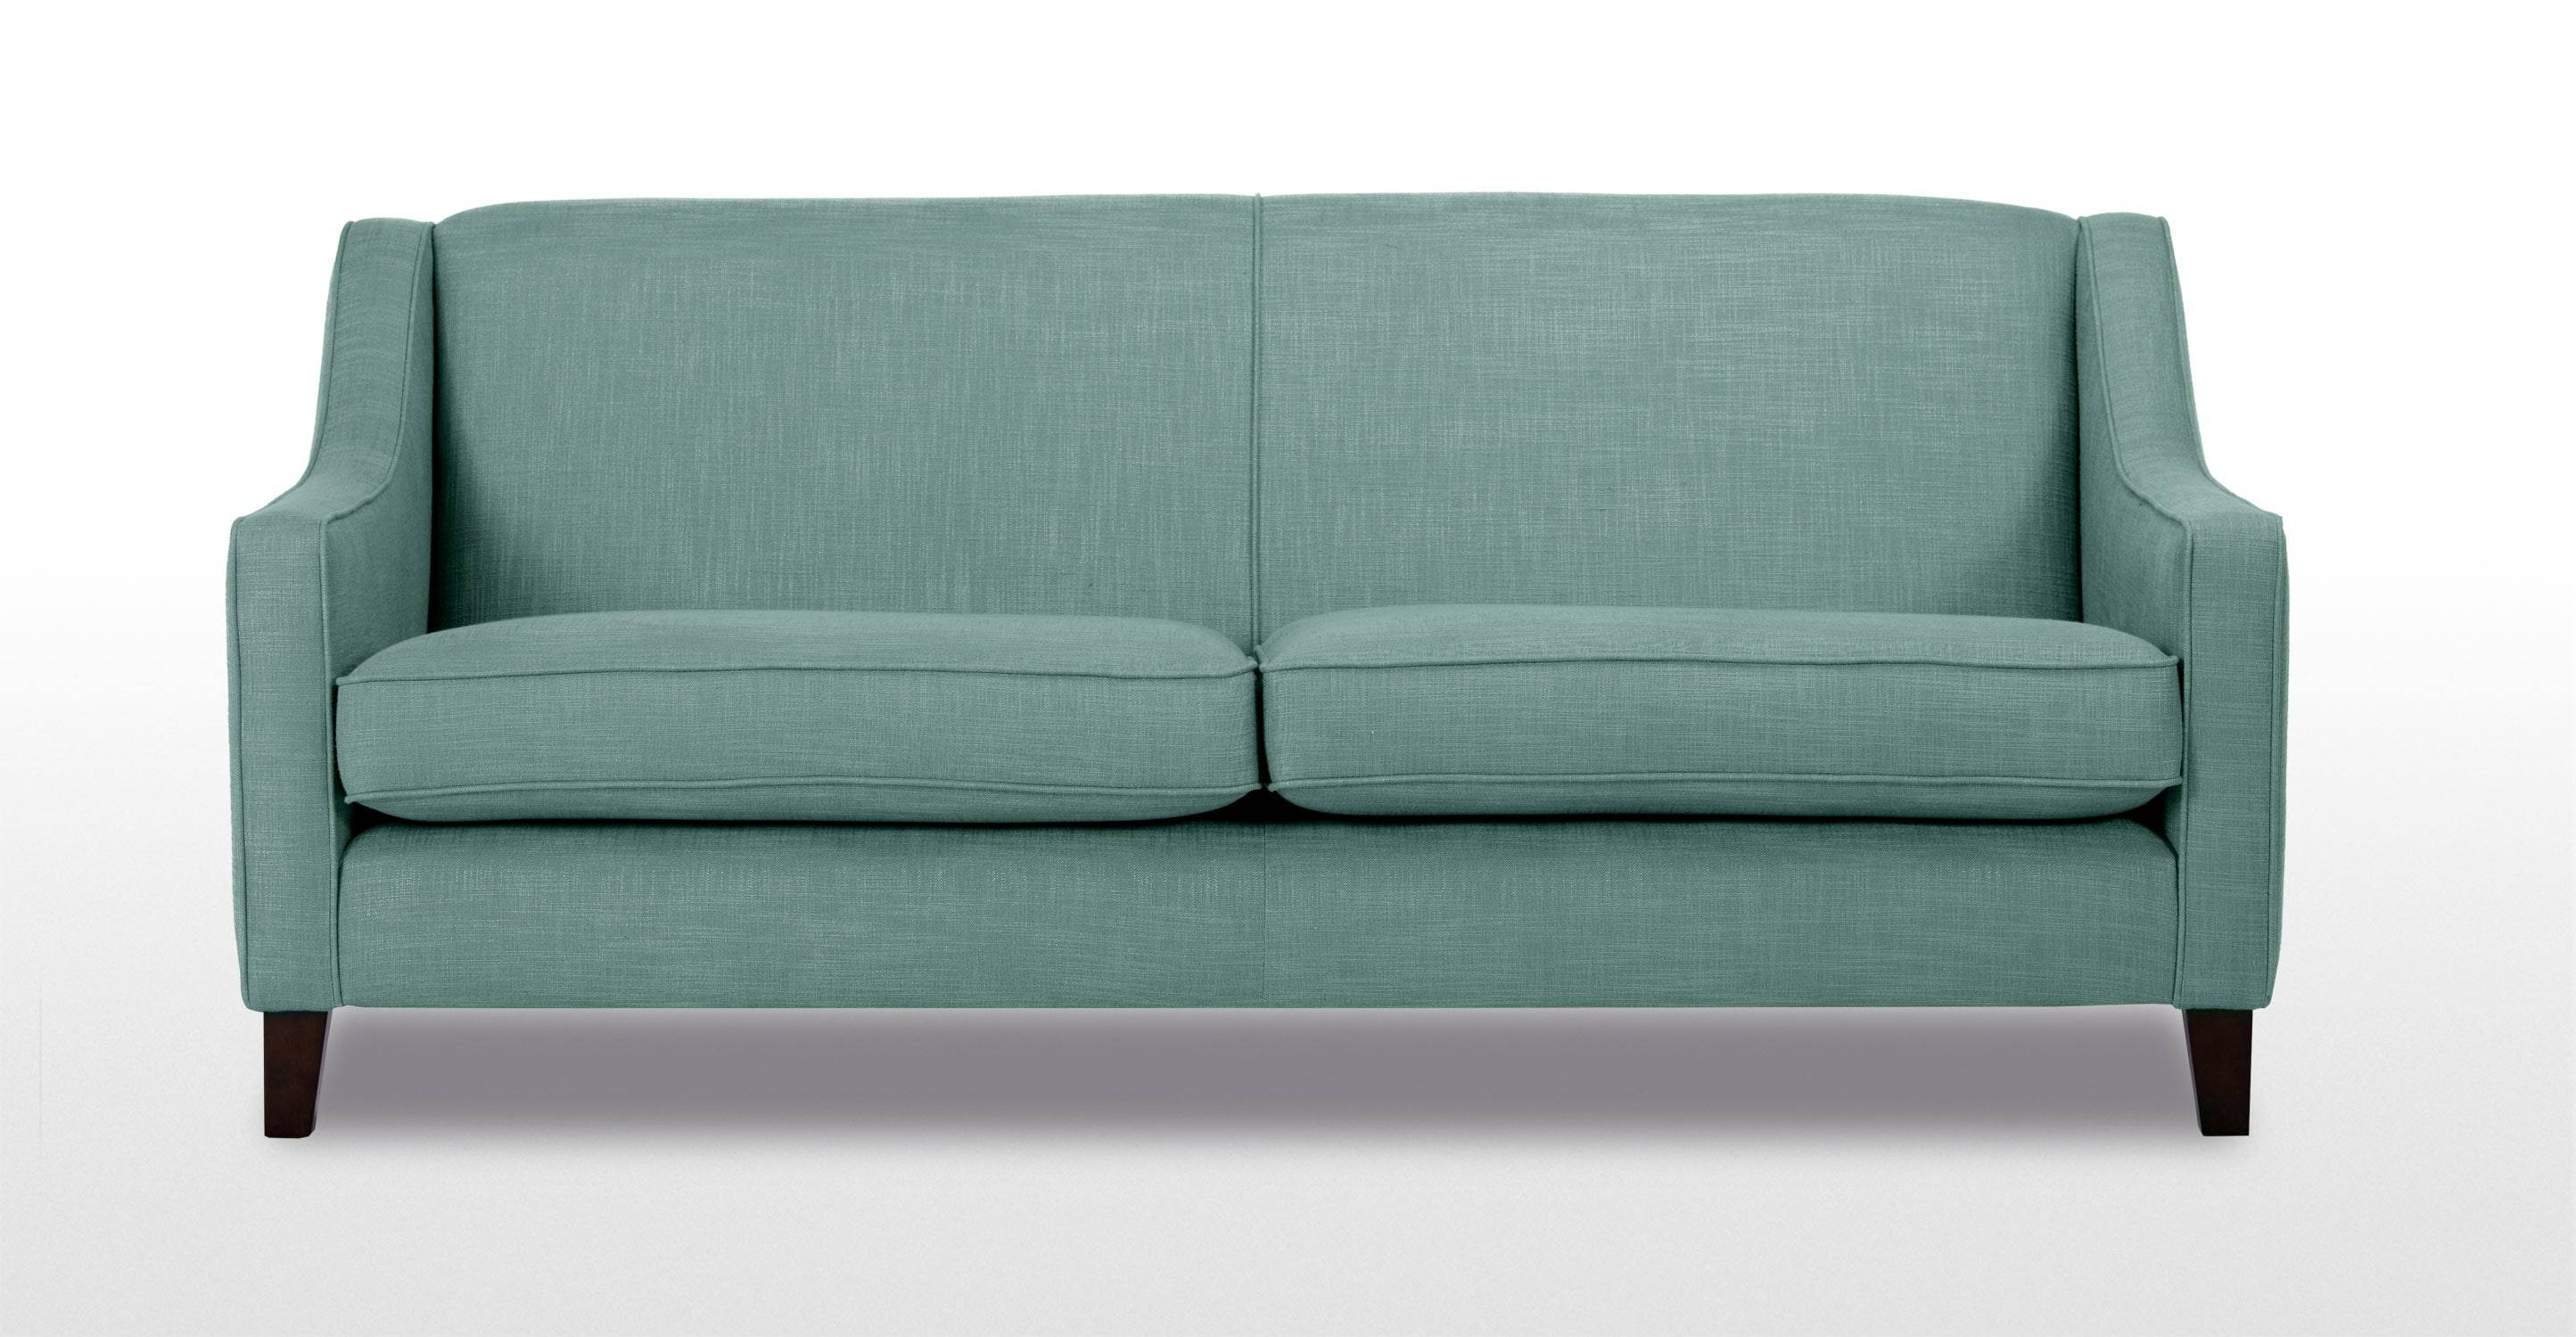 Halston 3 Seater Sofa In Aqua | Made throughout Three Seater Sofas (Image 20 of 30)